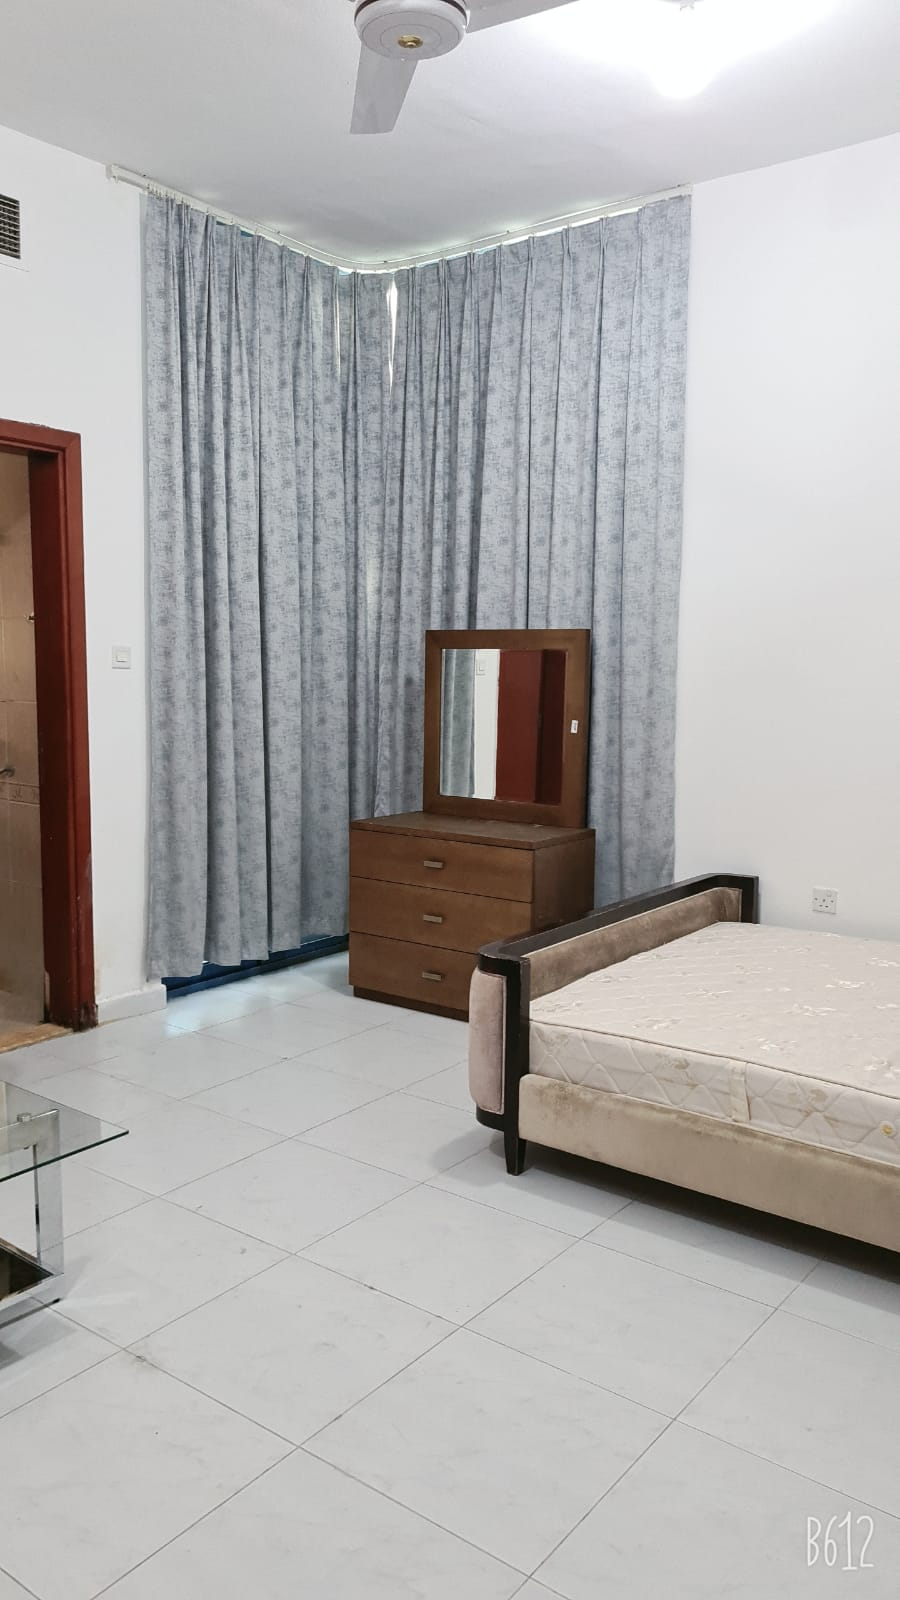 Spacious Room for rent in Falcon tower Ajman